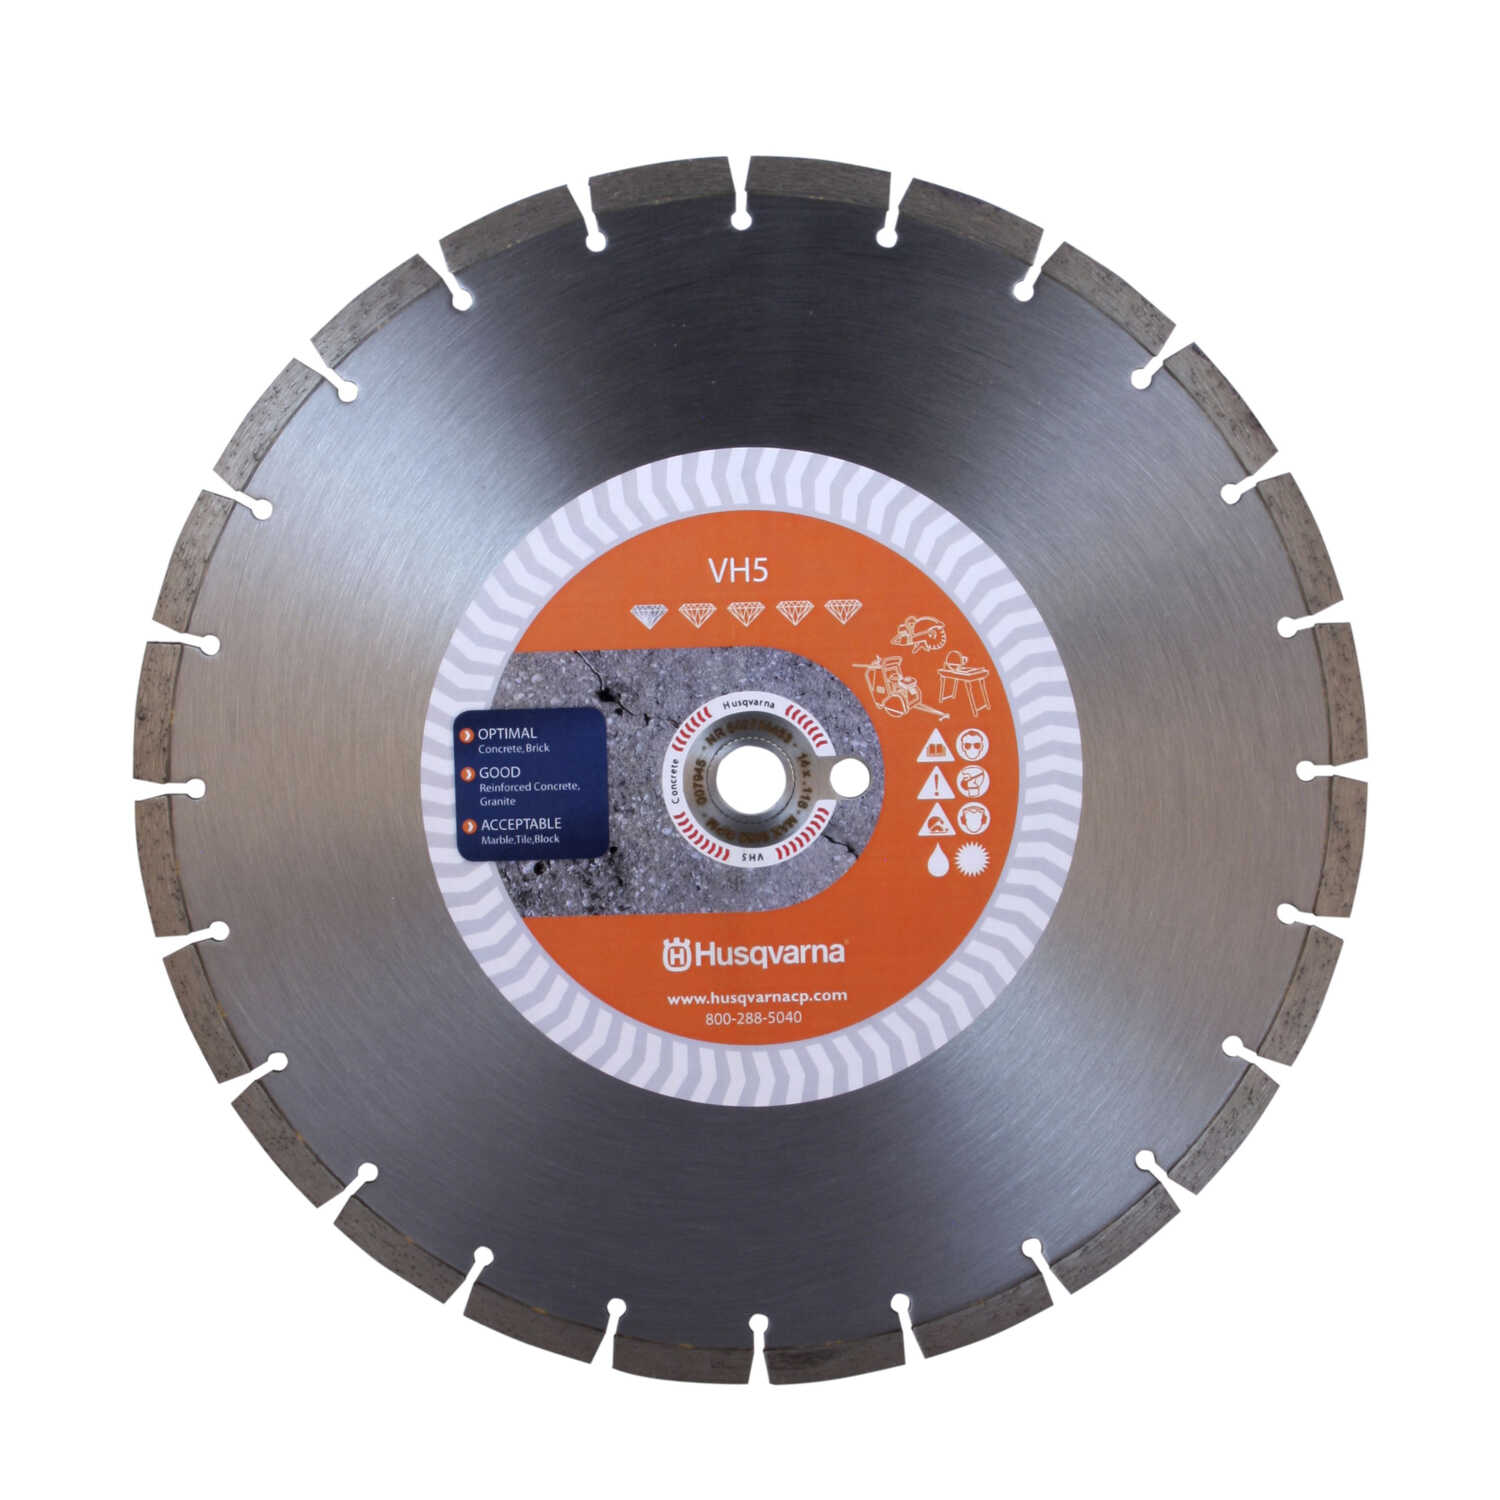 Husqvarna  14  Diamond  VH5  Segmented Rim Saw Blade  0.118 in. thick  1 in./20 mm  24 teeth 1 pk